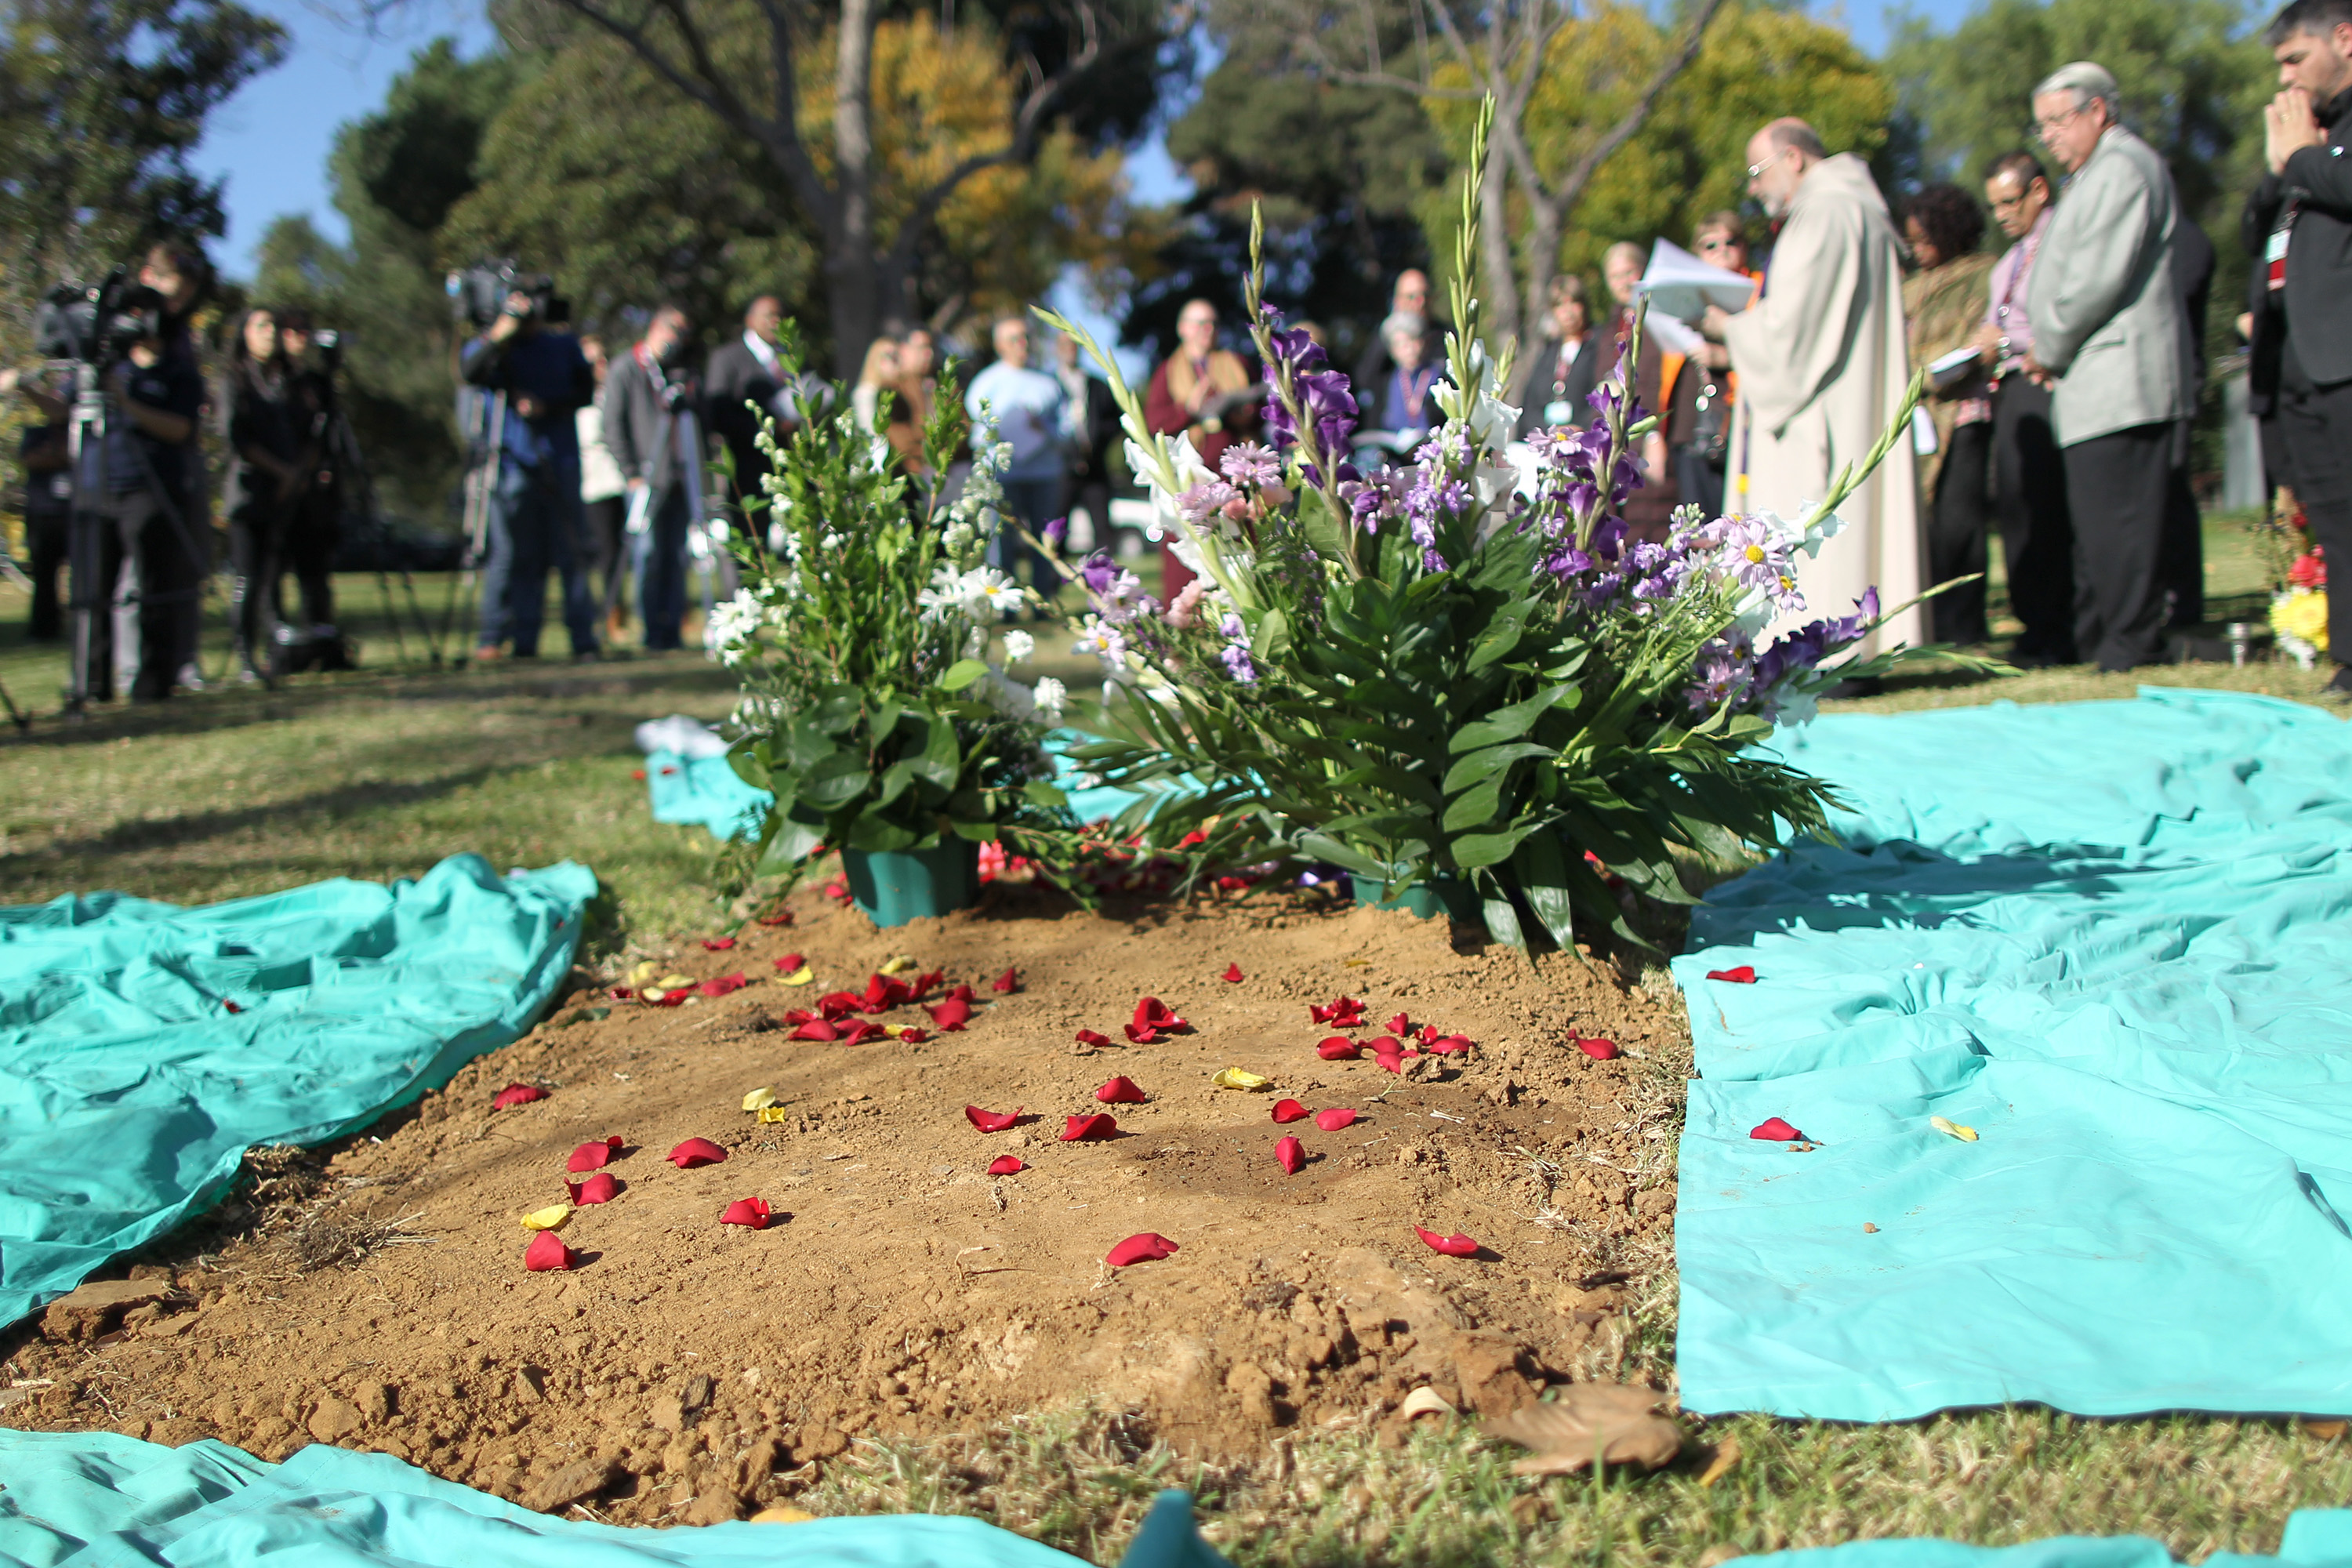 Mass Burial Held For Over 1,000 Unclaimed Bodies In Los Angeles